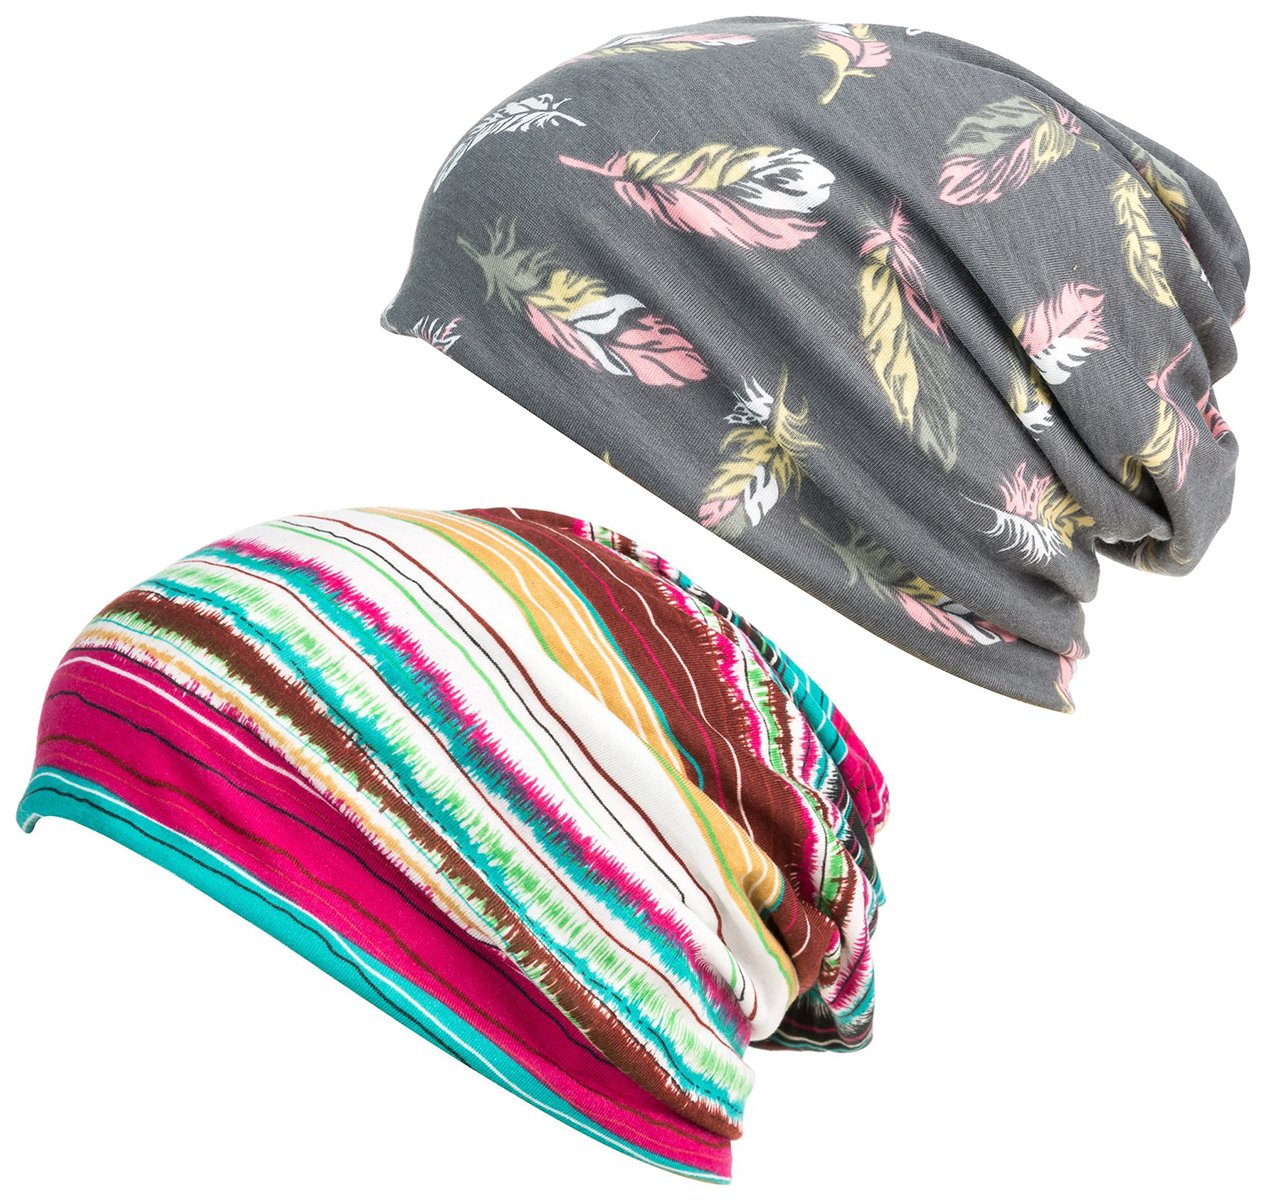 DancMolly Print Flower Cap Cancer Hats Beanie Stretch Casual Turbans for Women (Gray+Red)